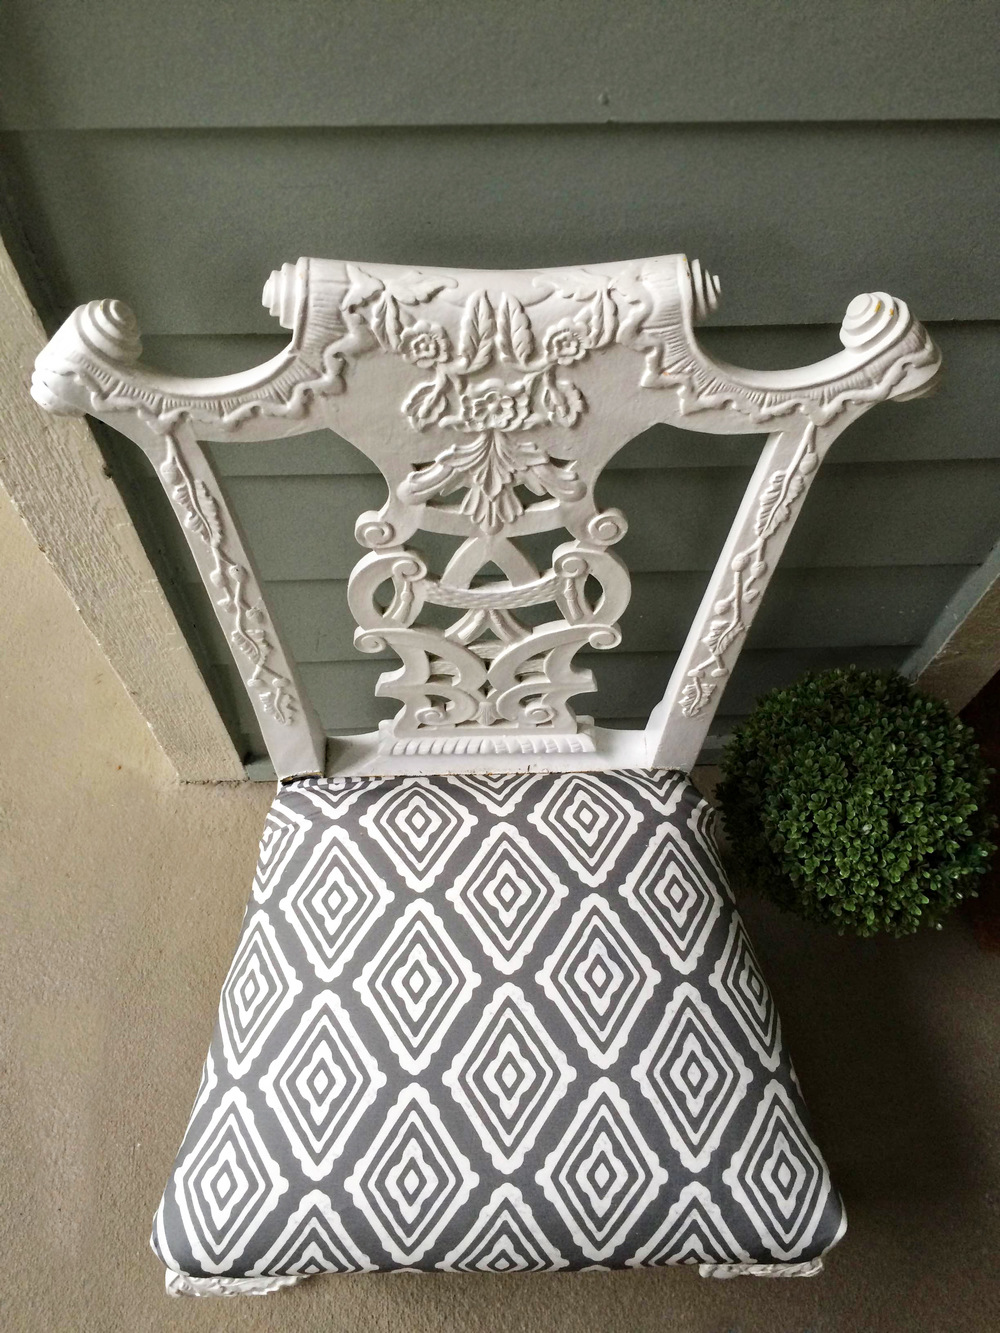 Minted Fabric on Chair